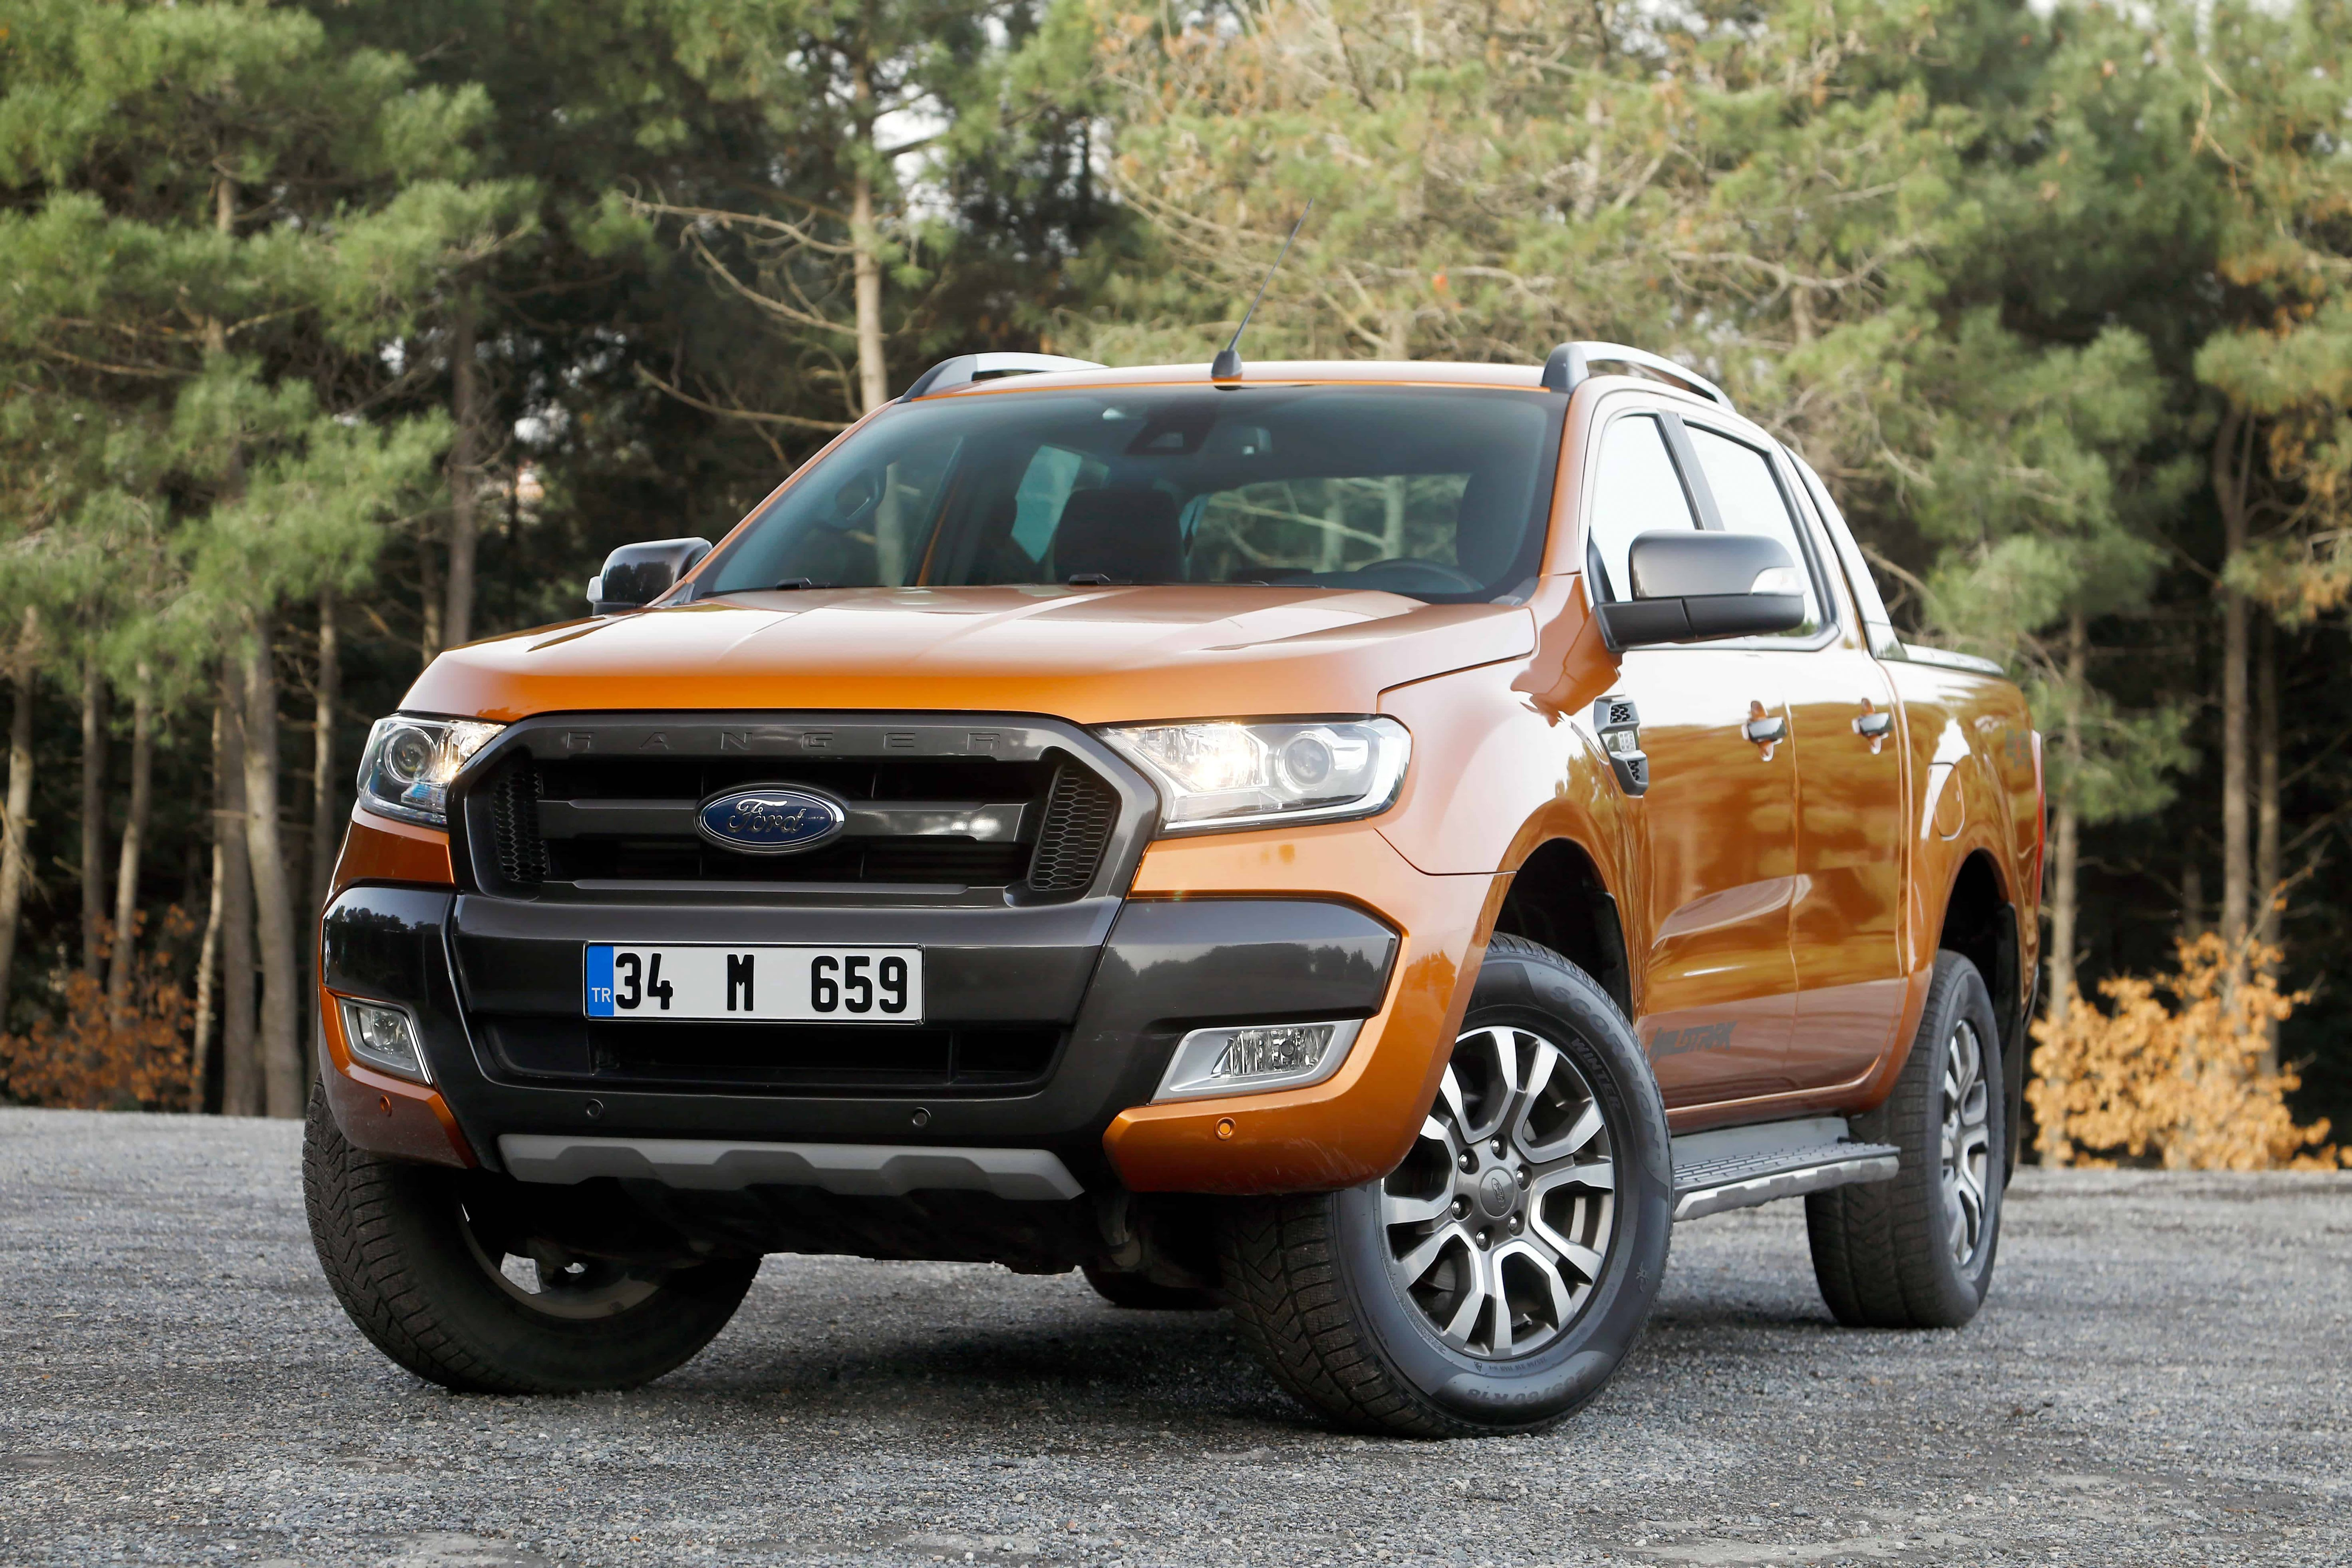 Blower Motor Used to Replace Original in Ford Ranger's May Short